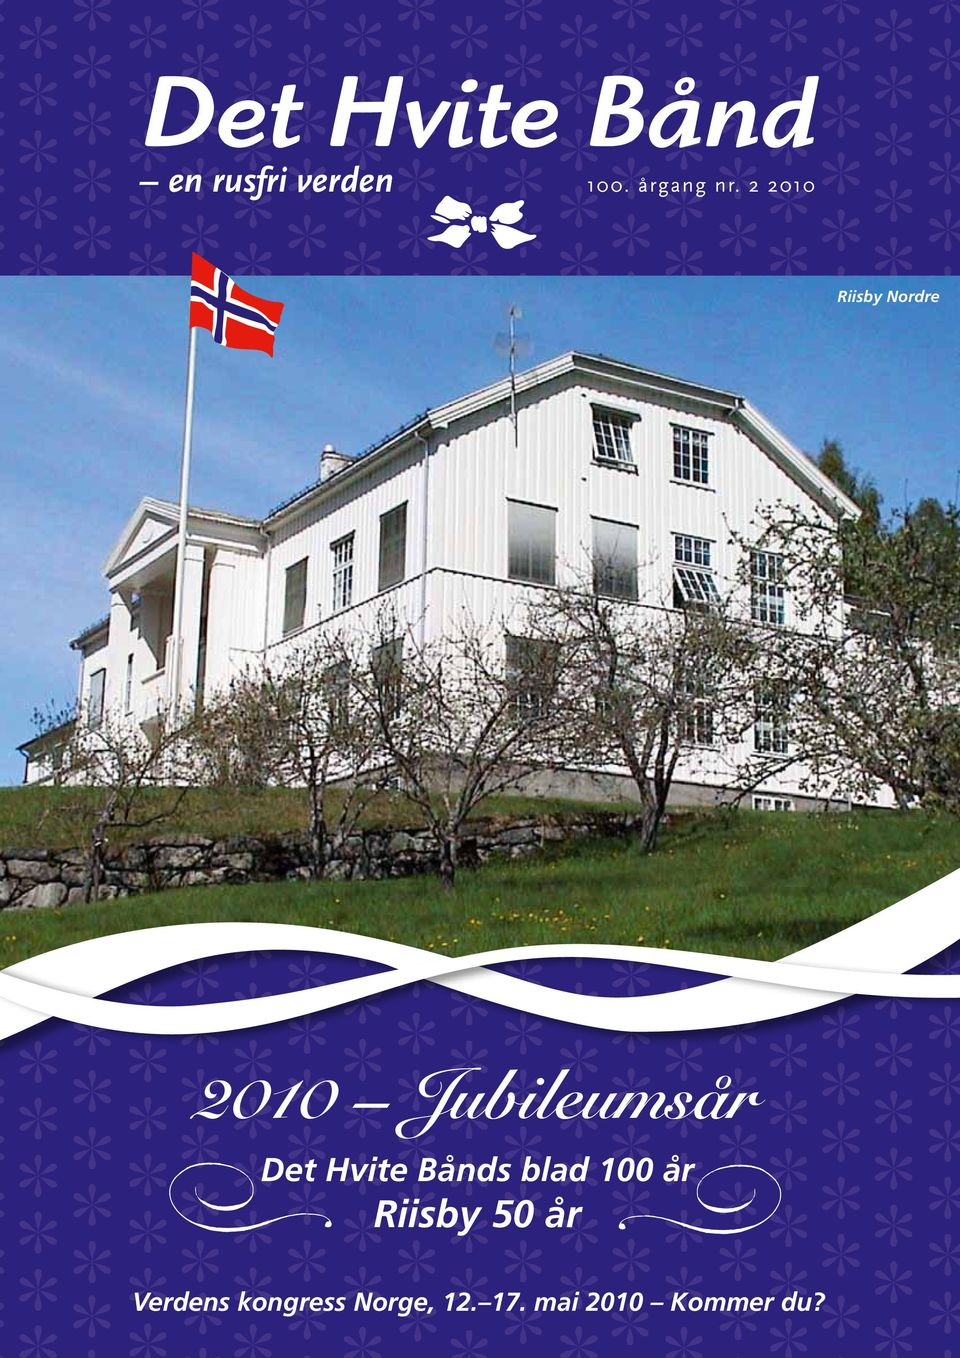 8 2009 Riisby Nordre 2010 Jubileumsår